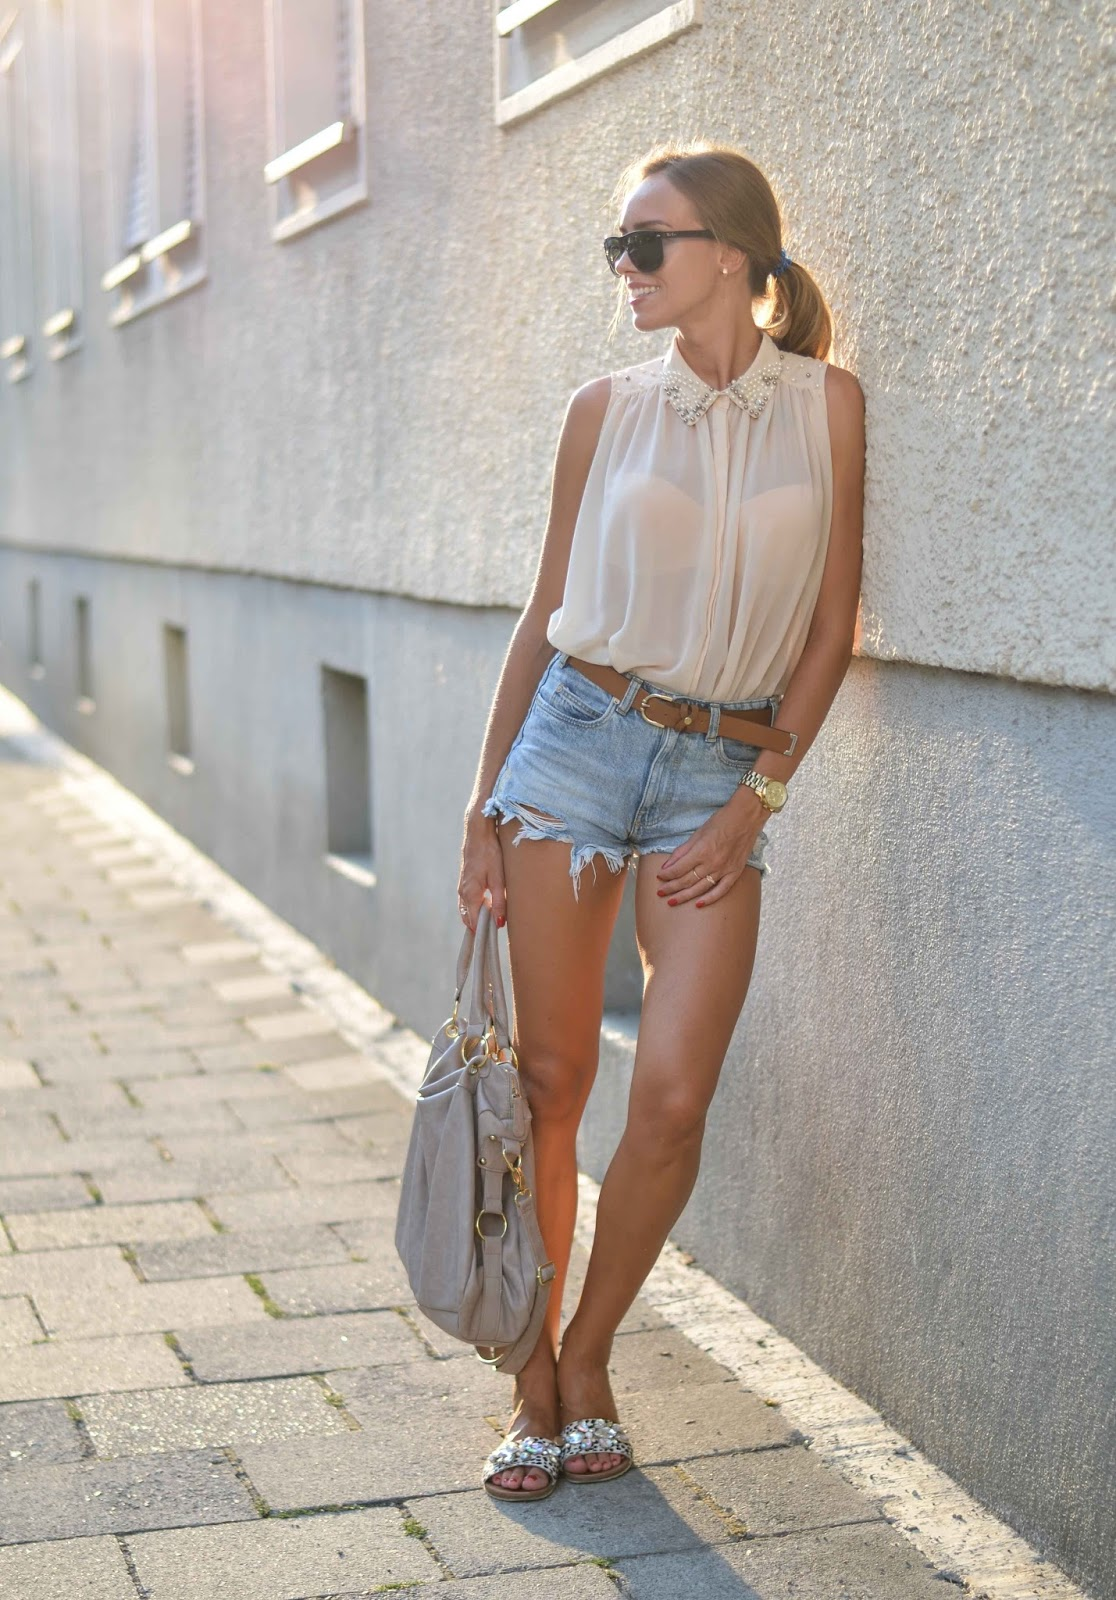 kristjaana mere denim shorts sleeveless sheer top summer outfit